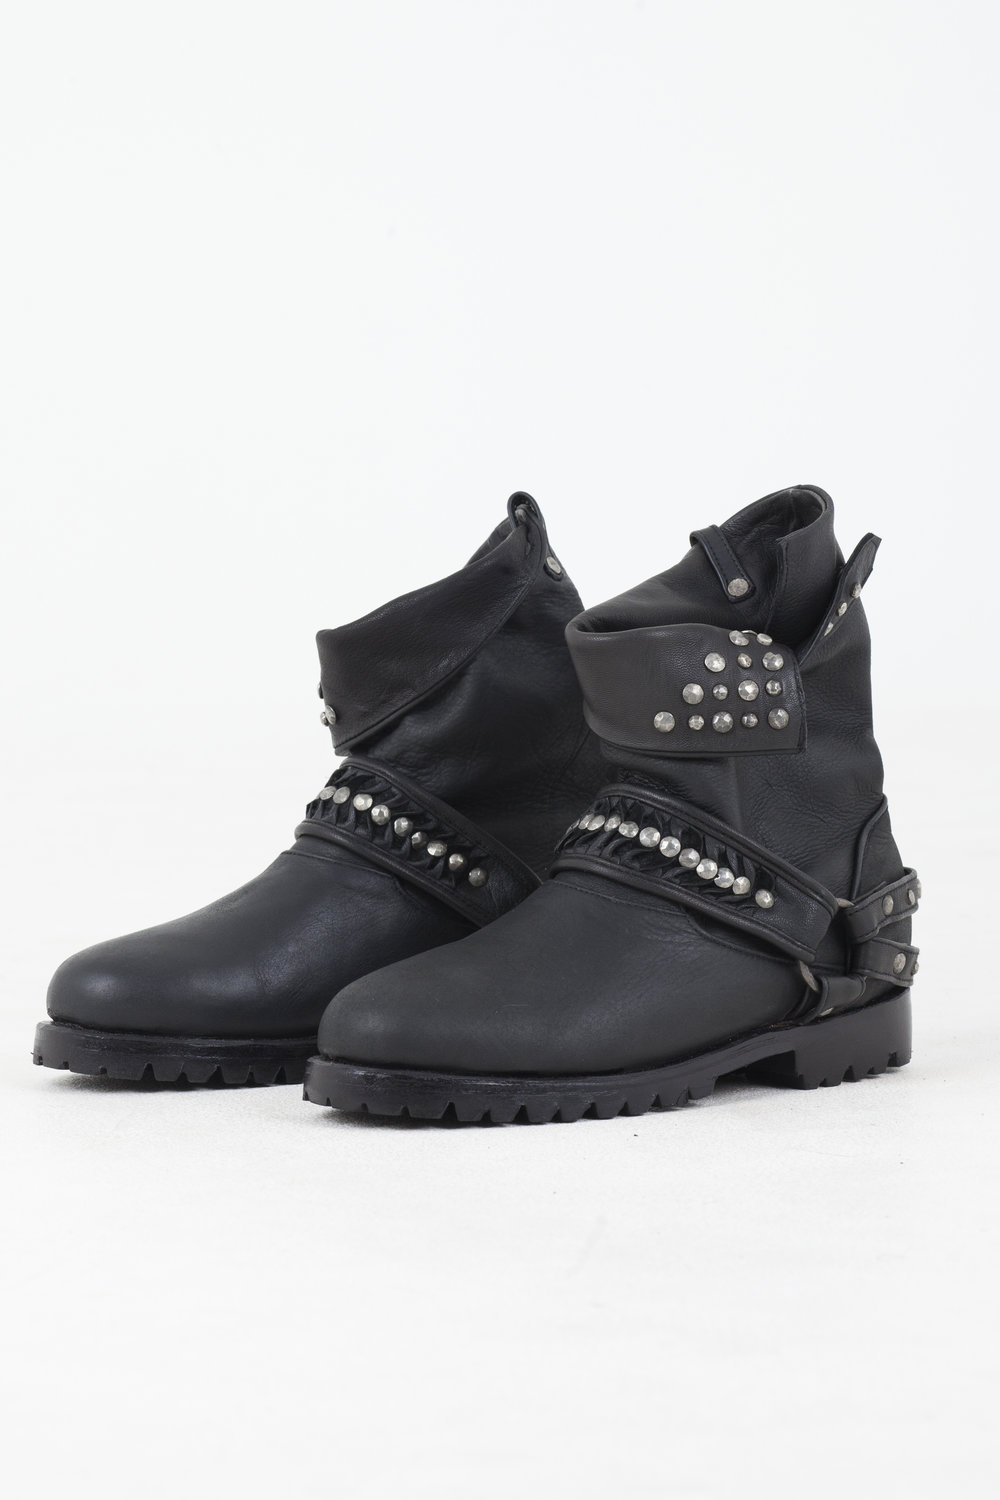 agoraphobia-collective-defiant-disorder-mad-leather-boots